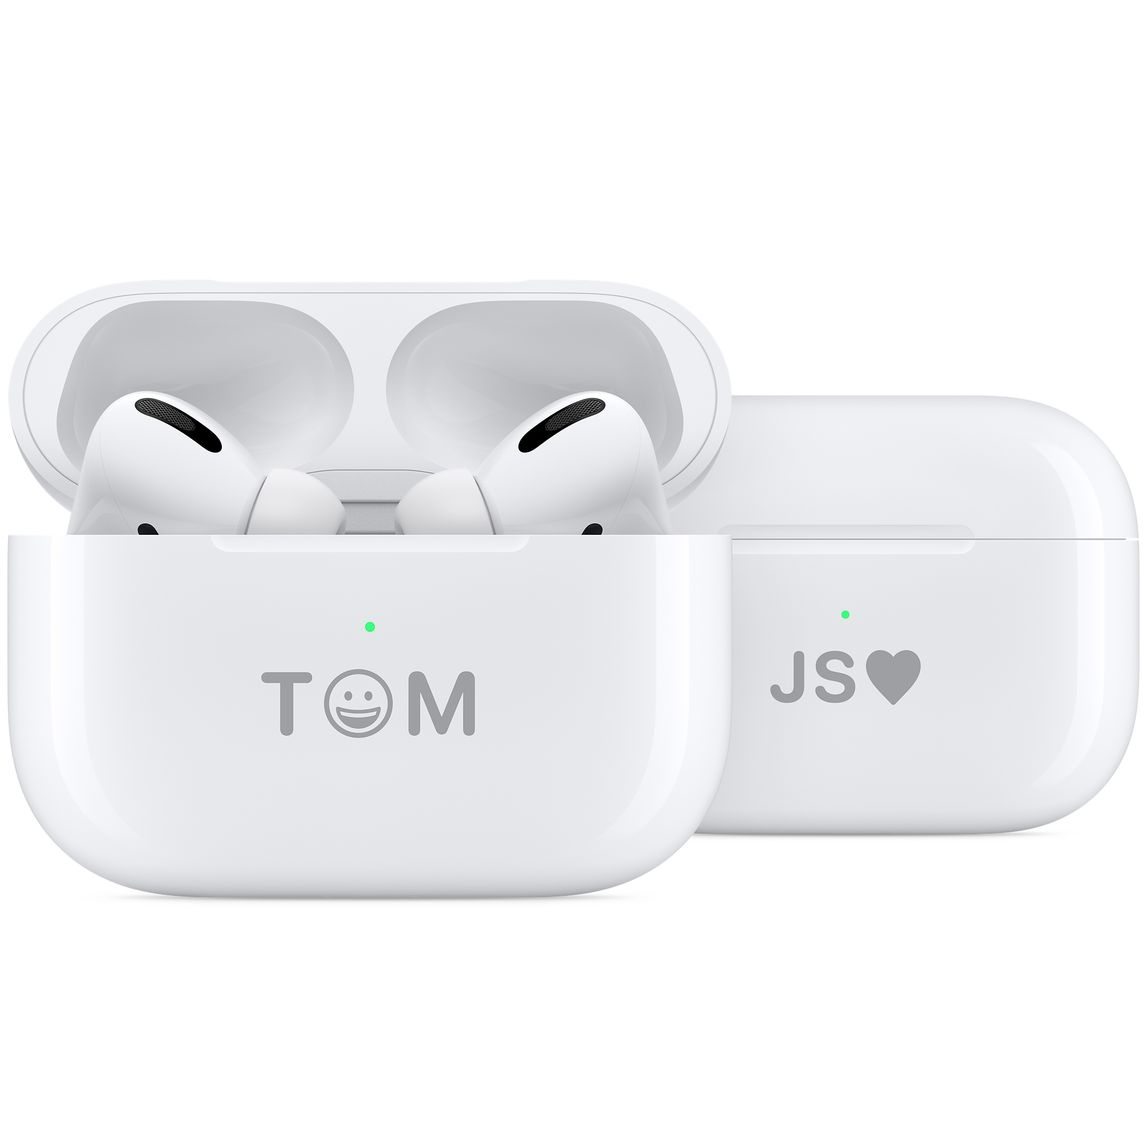 Iphone 8 apple airpods pro apple iphone 11 pro